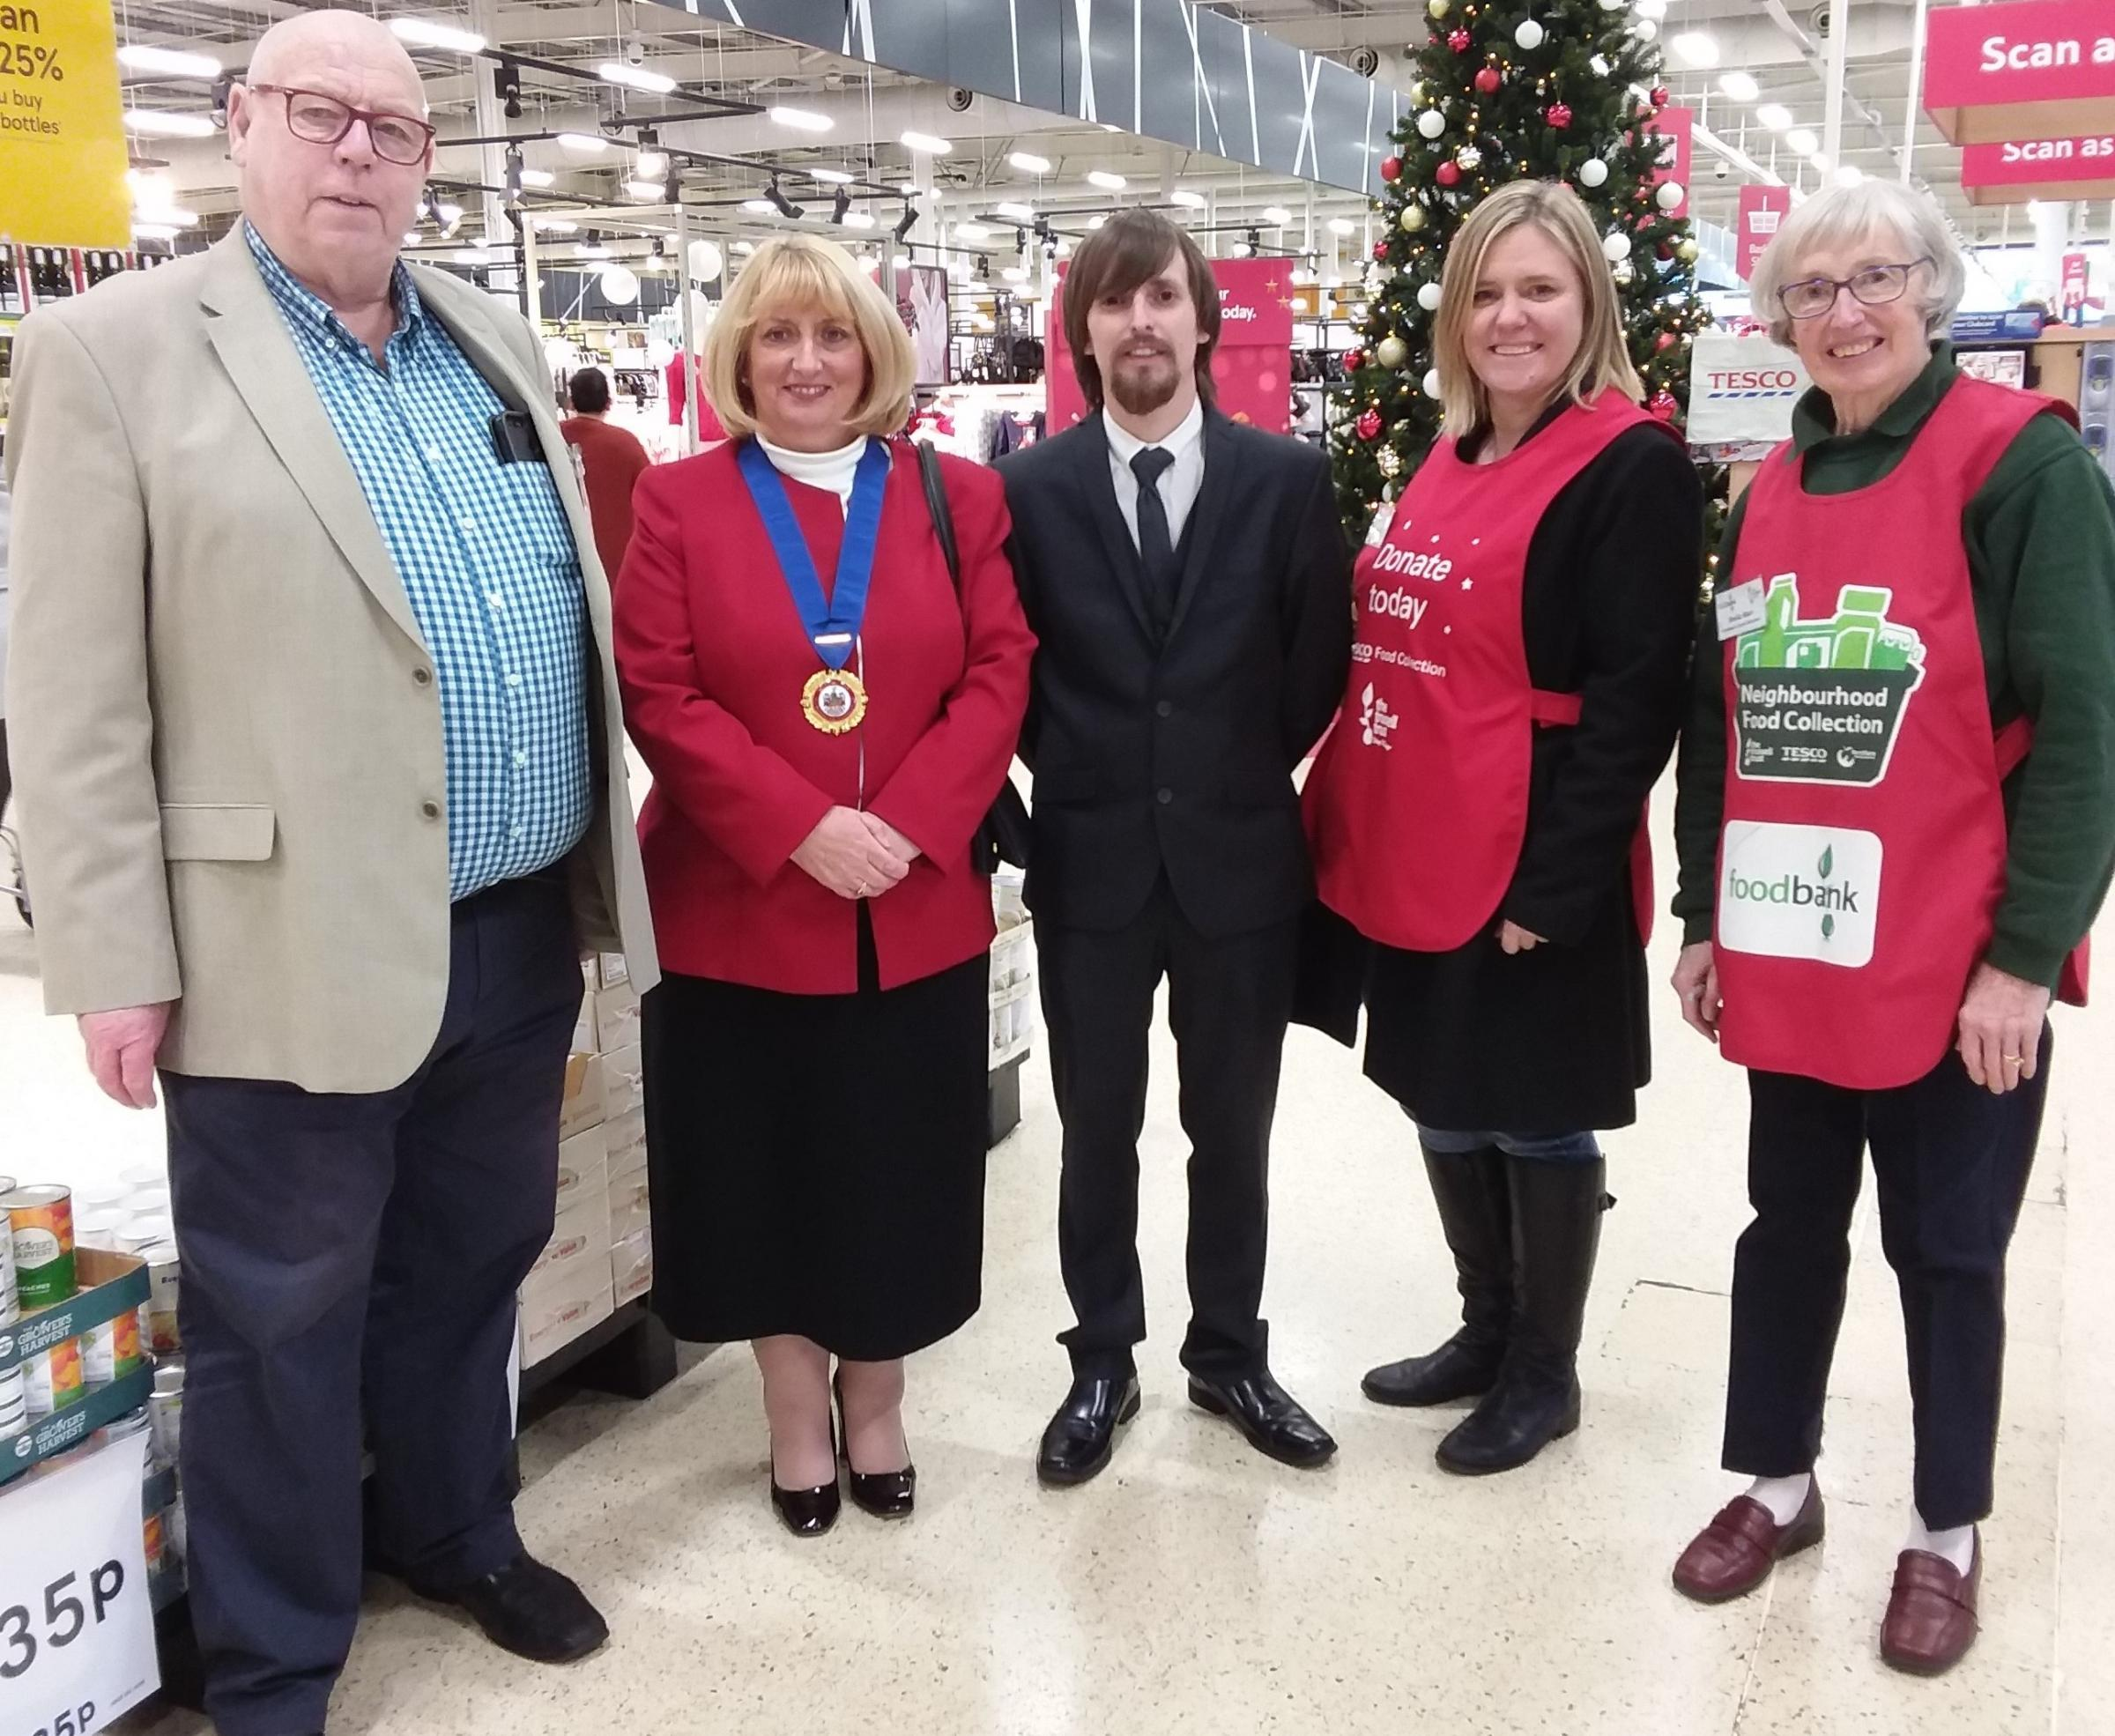 Warrington Foodbank project manager David McDonald with the Mayor of Warrington Cllr Karen Mundry, her consort Jason Mundry and volunteers Sarah Lavelle and Sheila Warr